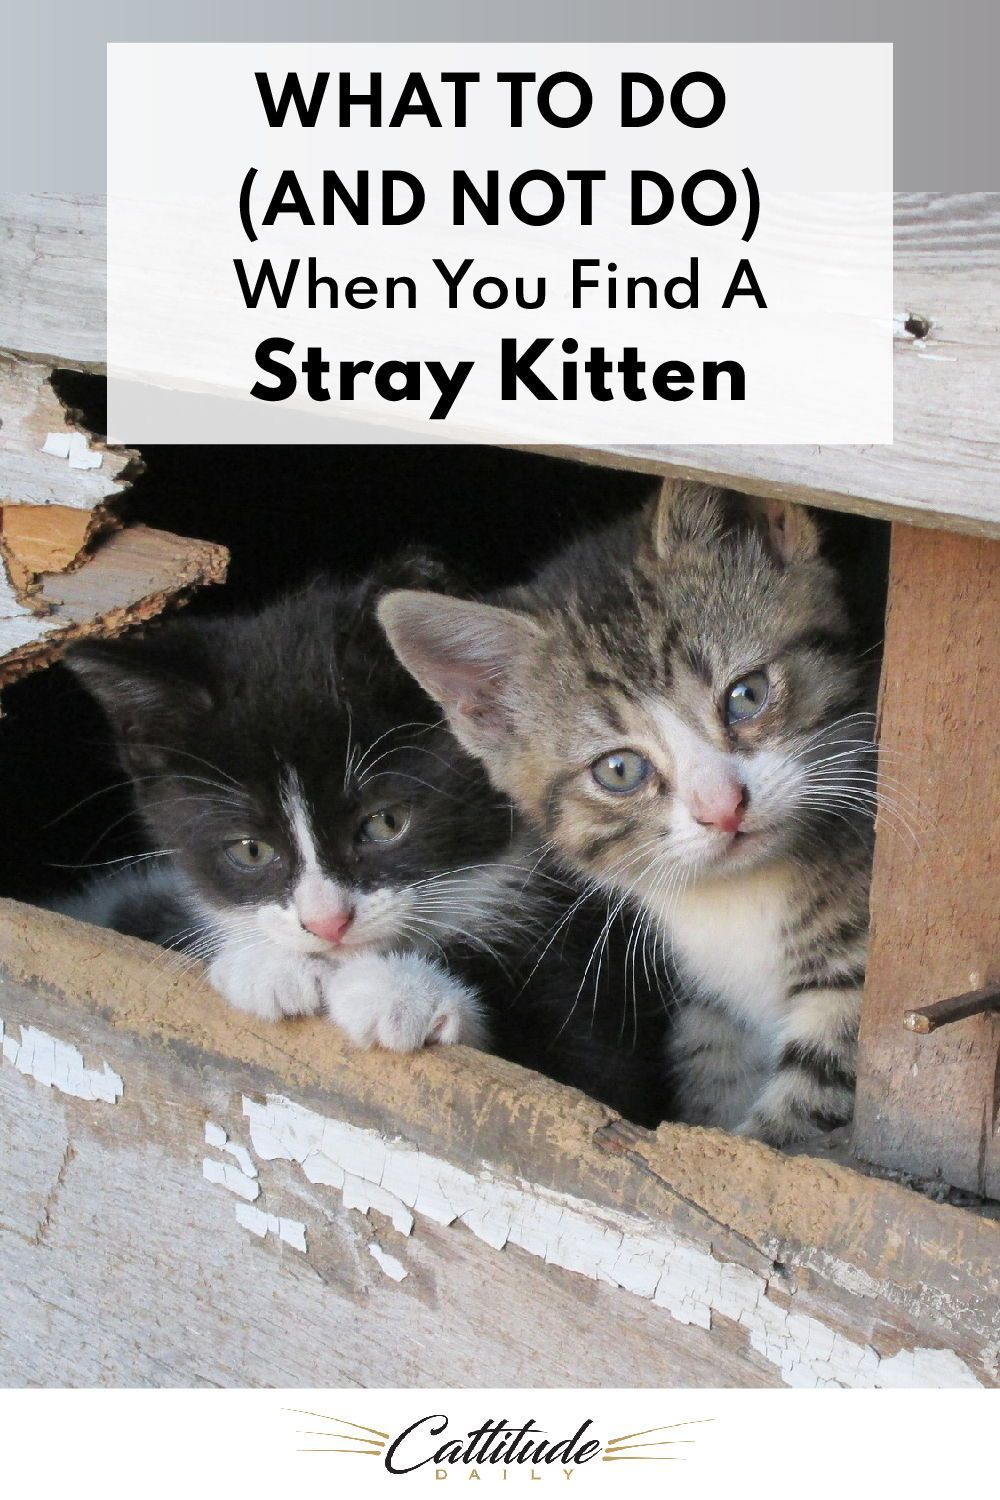 What To Do And What Not To Do When You Find A Stray Kitten In 2020 Kitten Care Kitten Cat Life